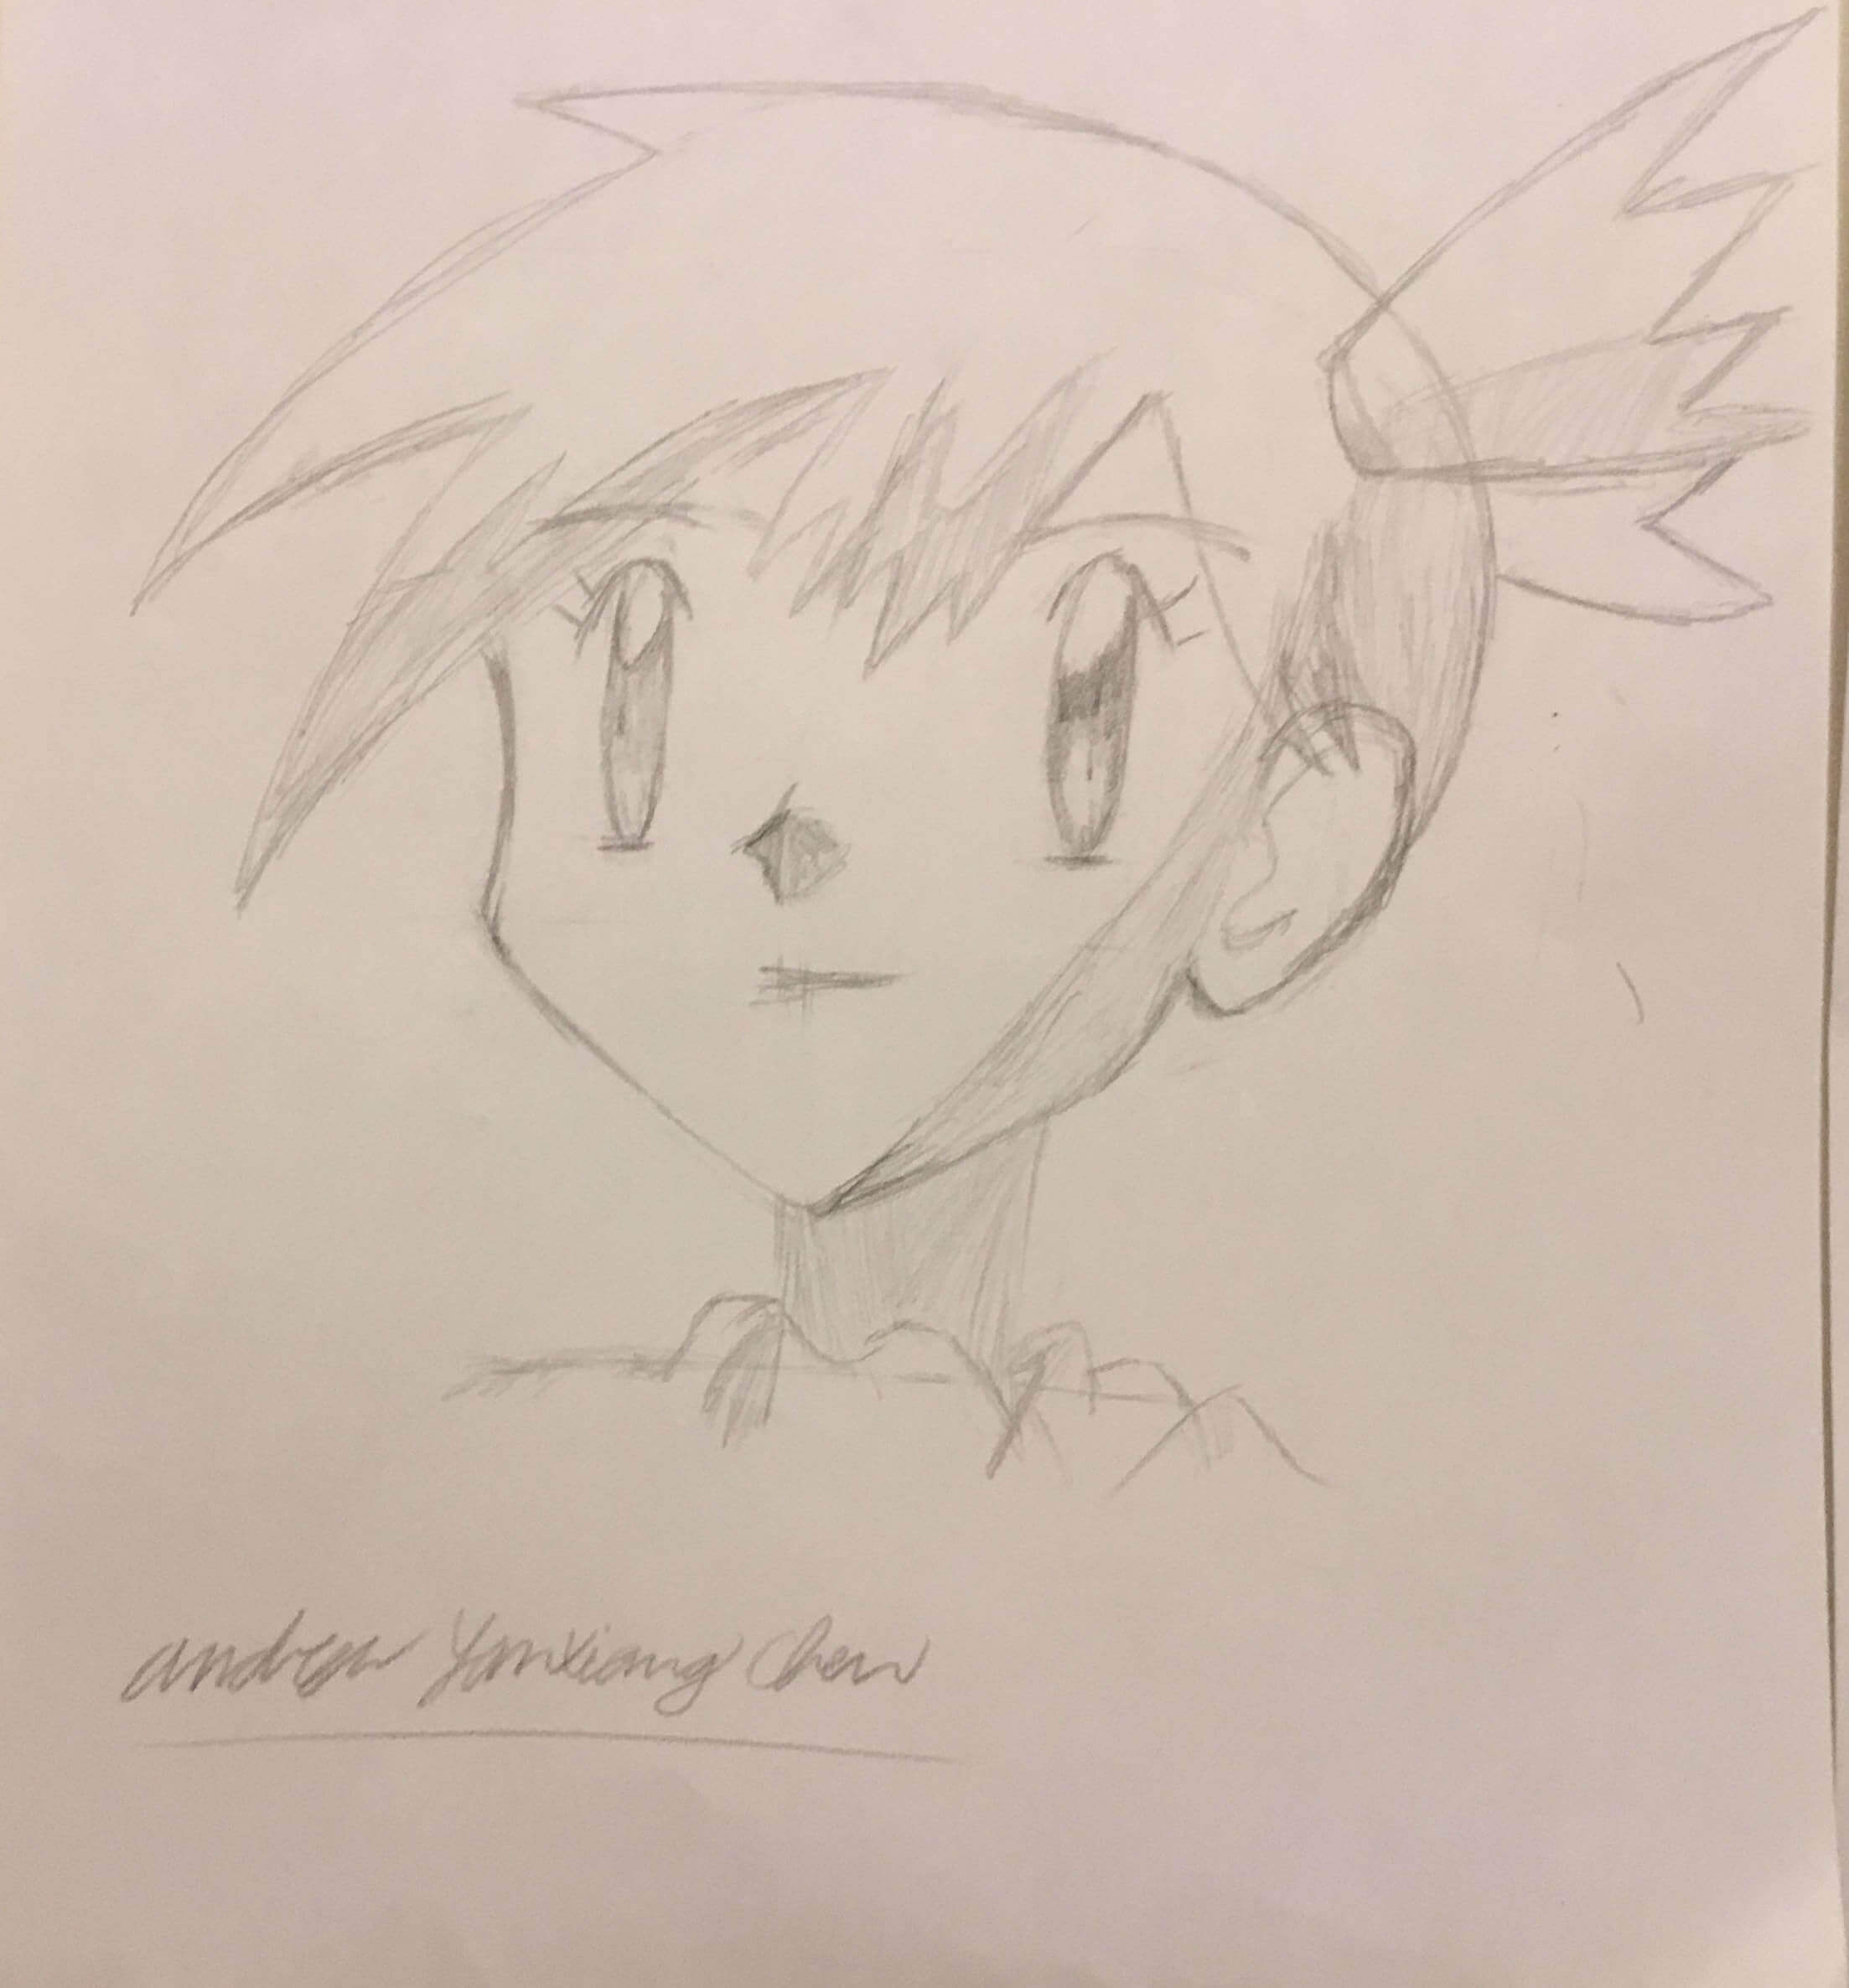 Drawing of Pokemon character, Misty.